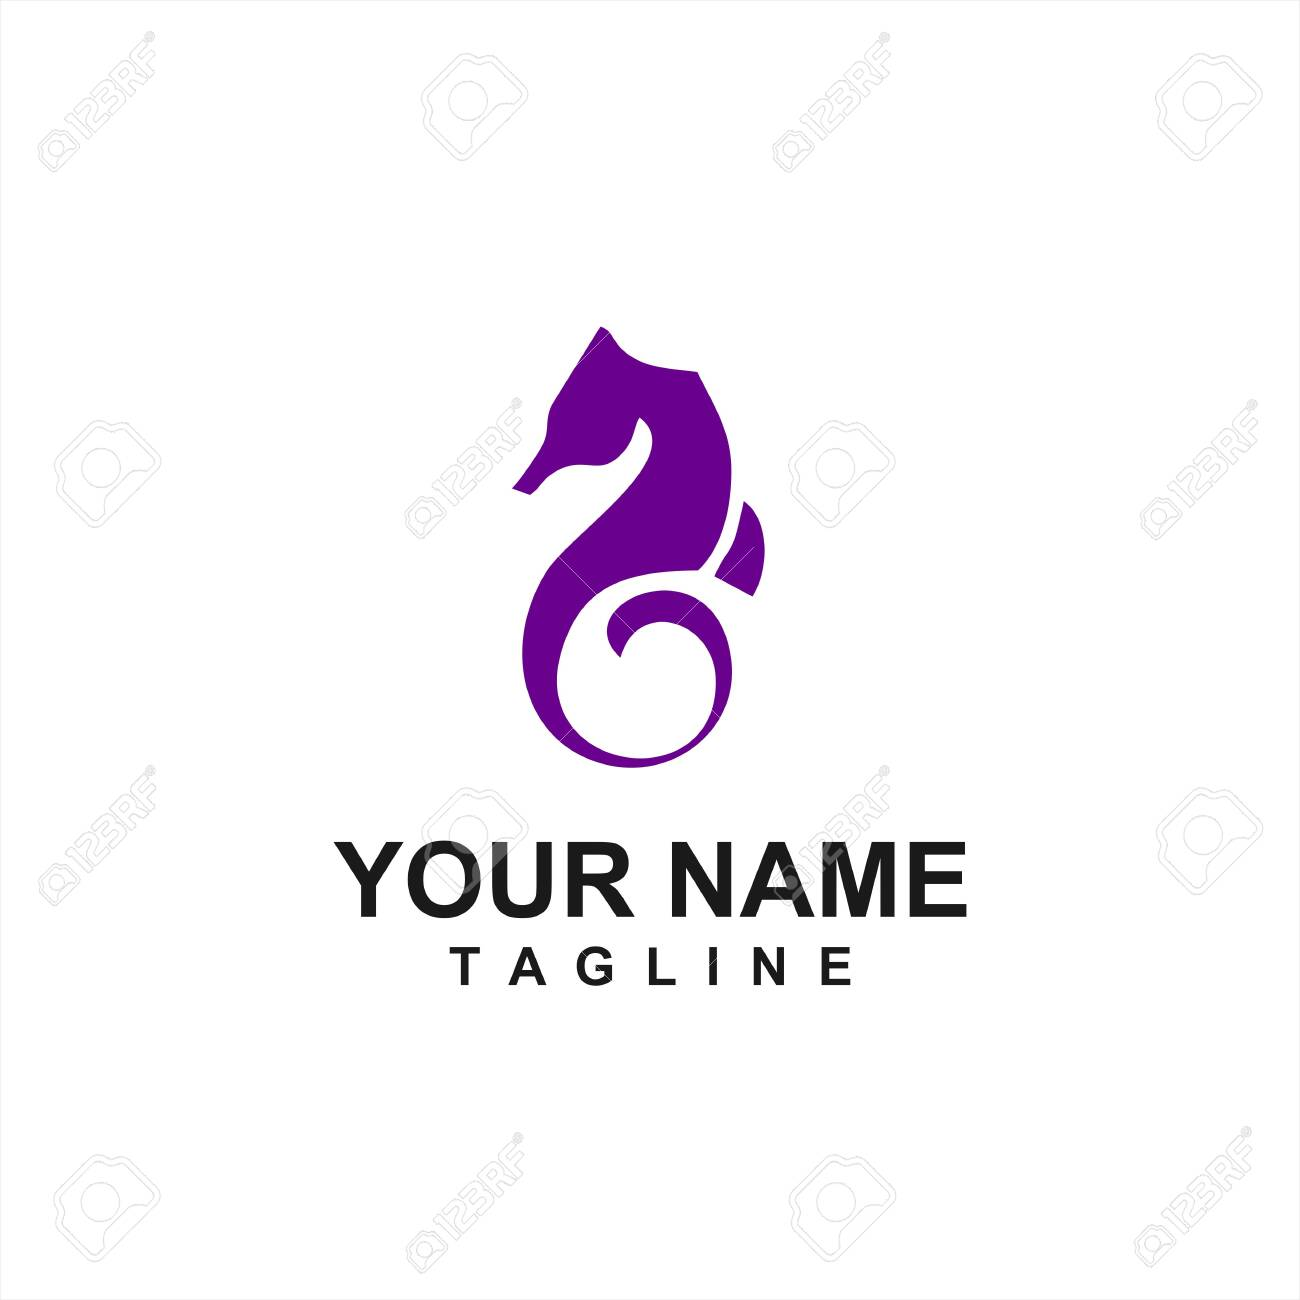 Simple Purple Sea Horse Logo And Vector Icon Royalty Free Cliparts Vectors And Stock Illustration Image 137174293